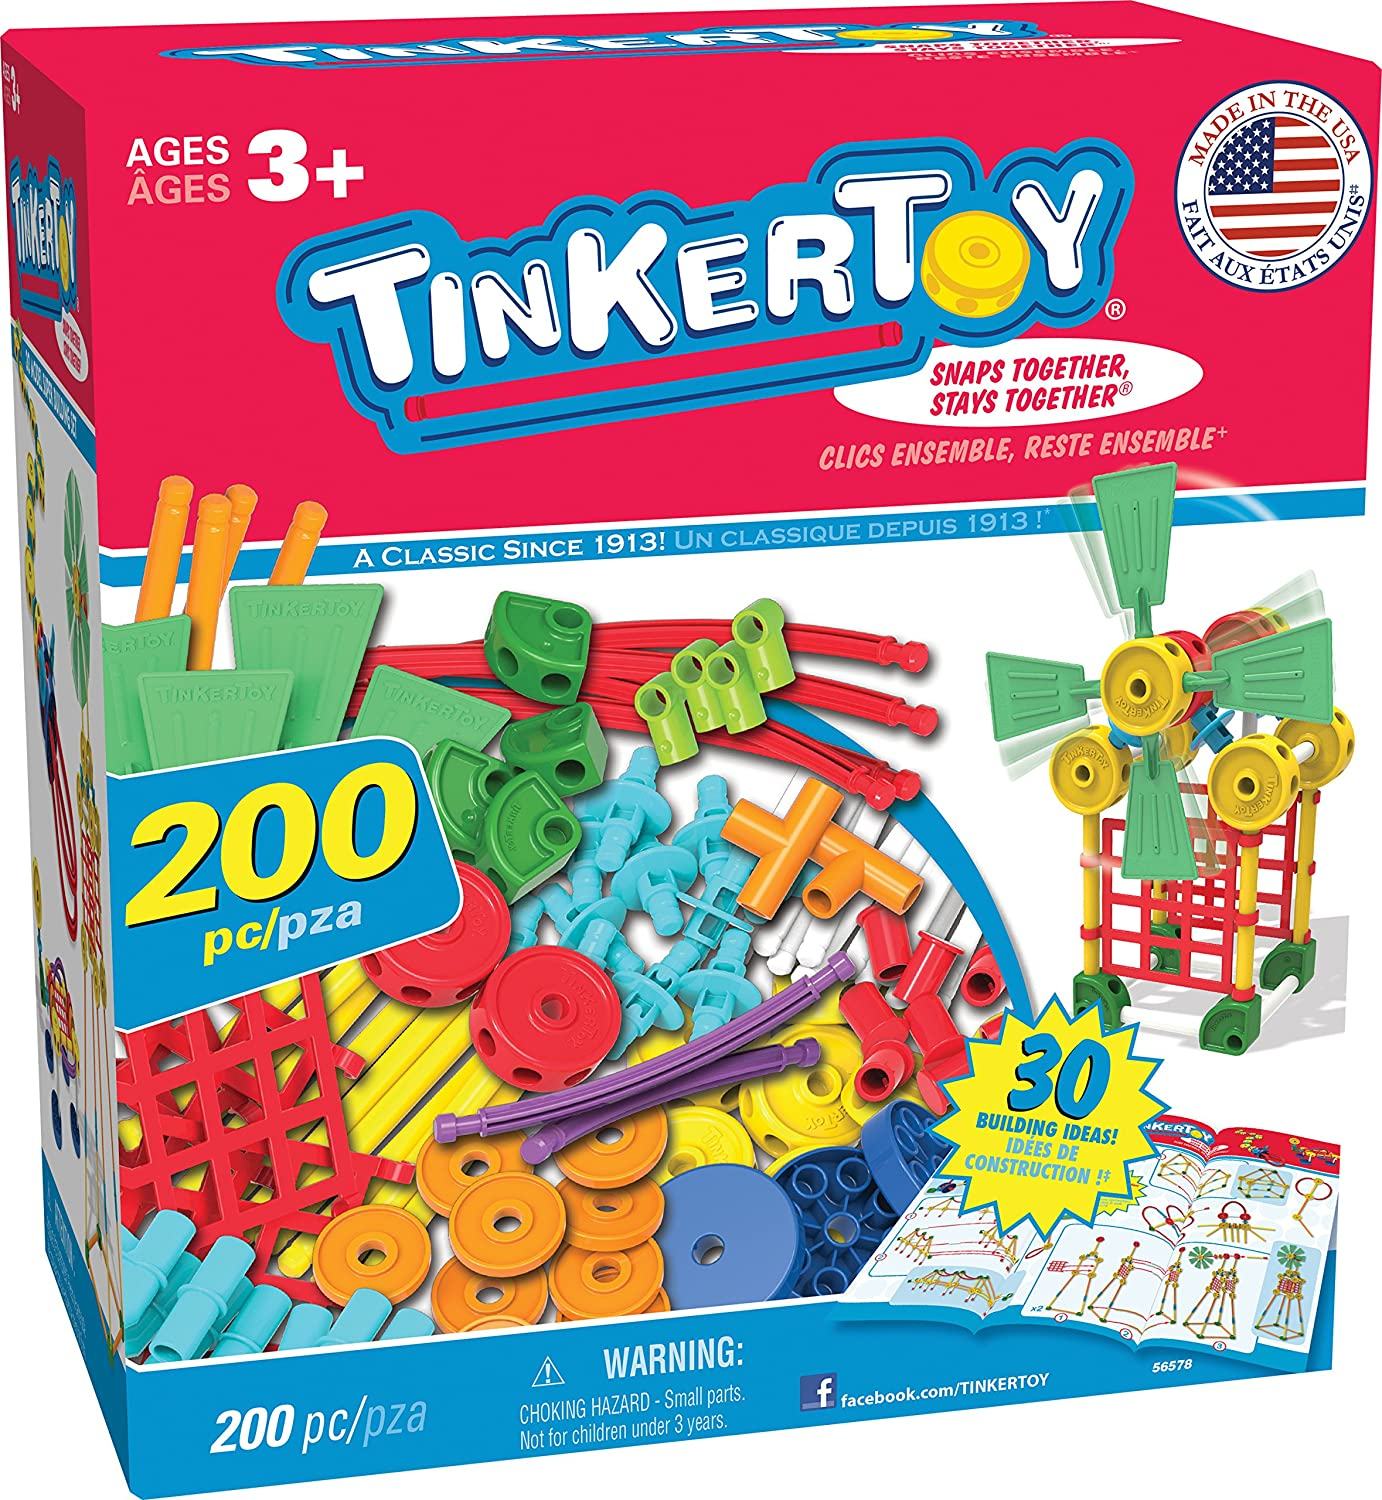 alta calidad general Tinkertoy 30 Model, 200 Piece, Super Building Set by USA USA USA  nueva marca